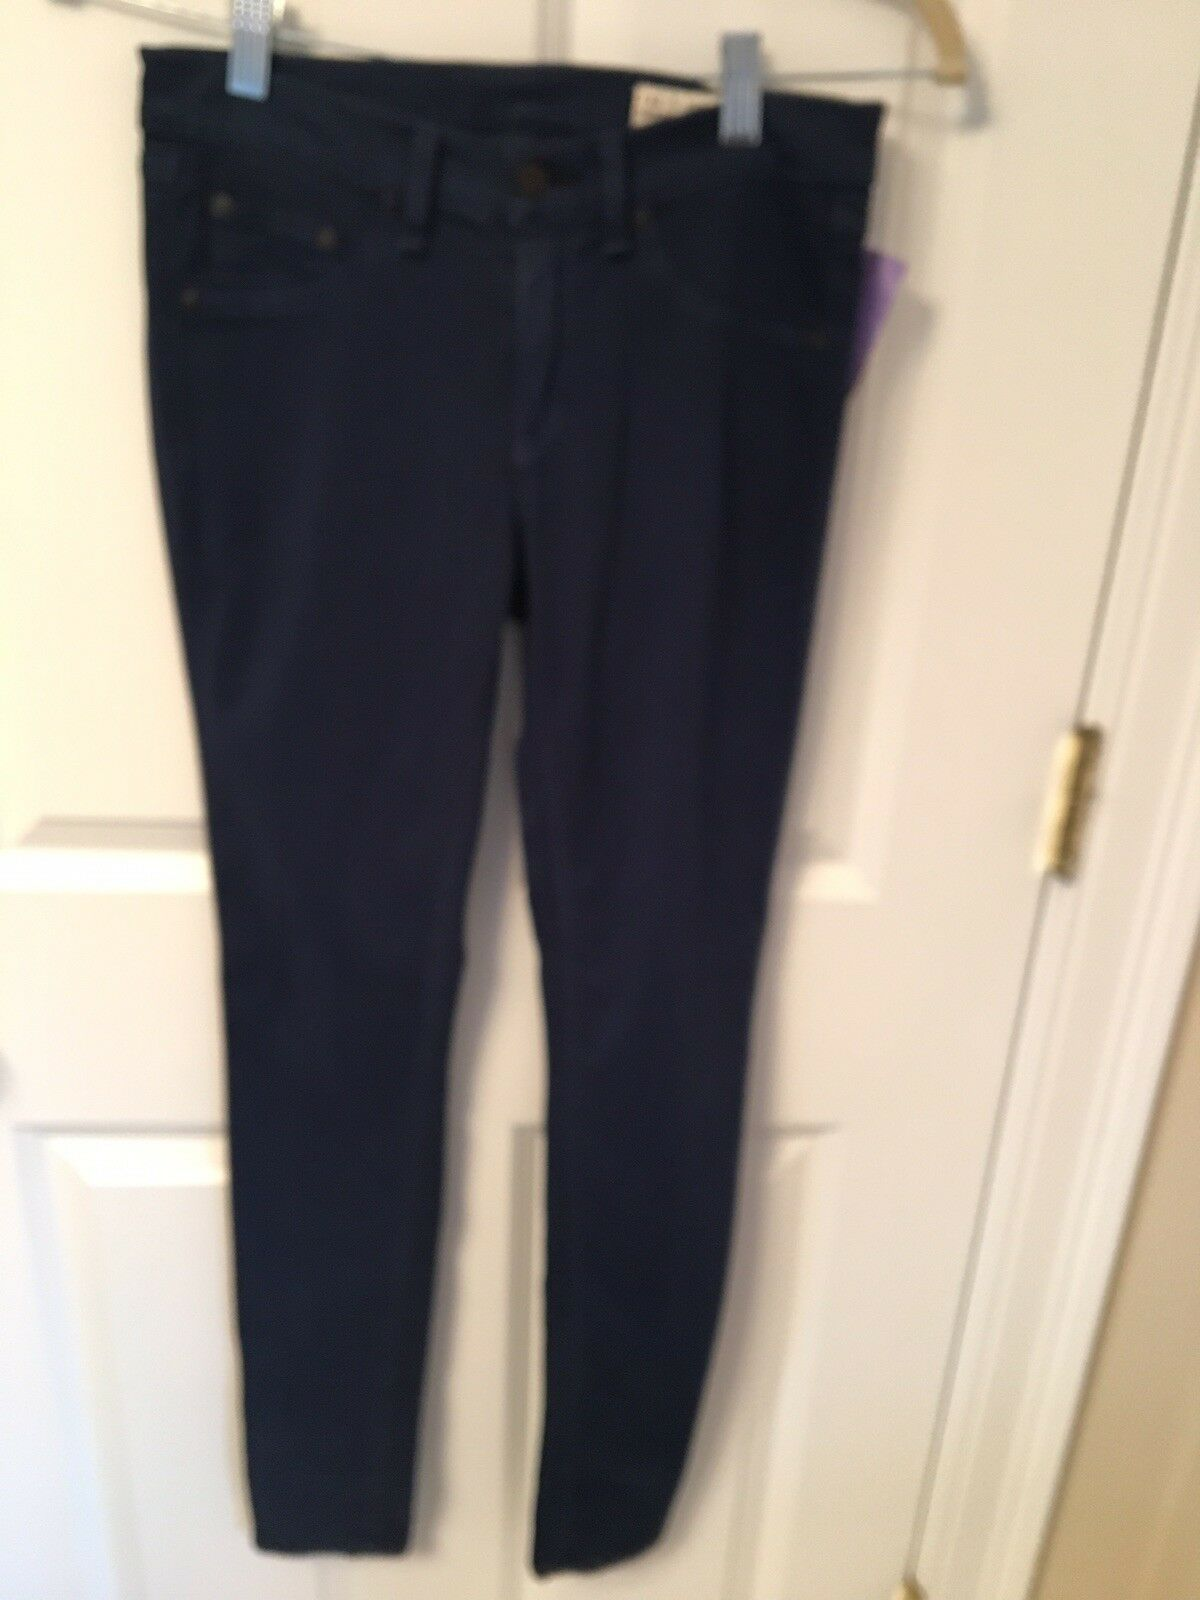 Rag and Bone bluee Legging, Size 26, New With Tag